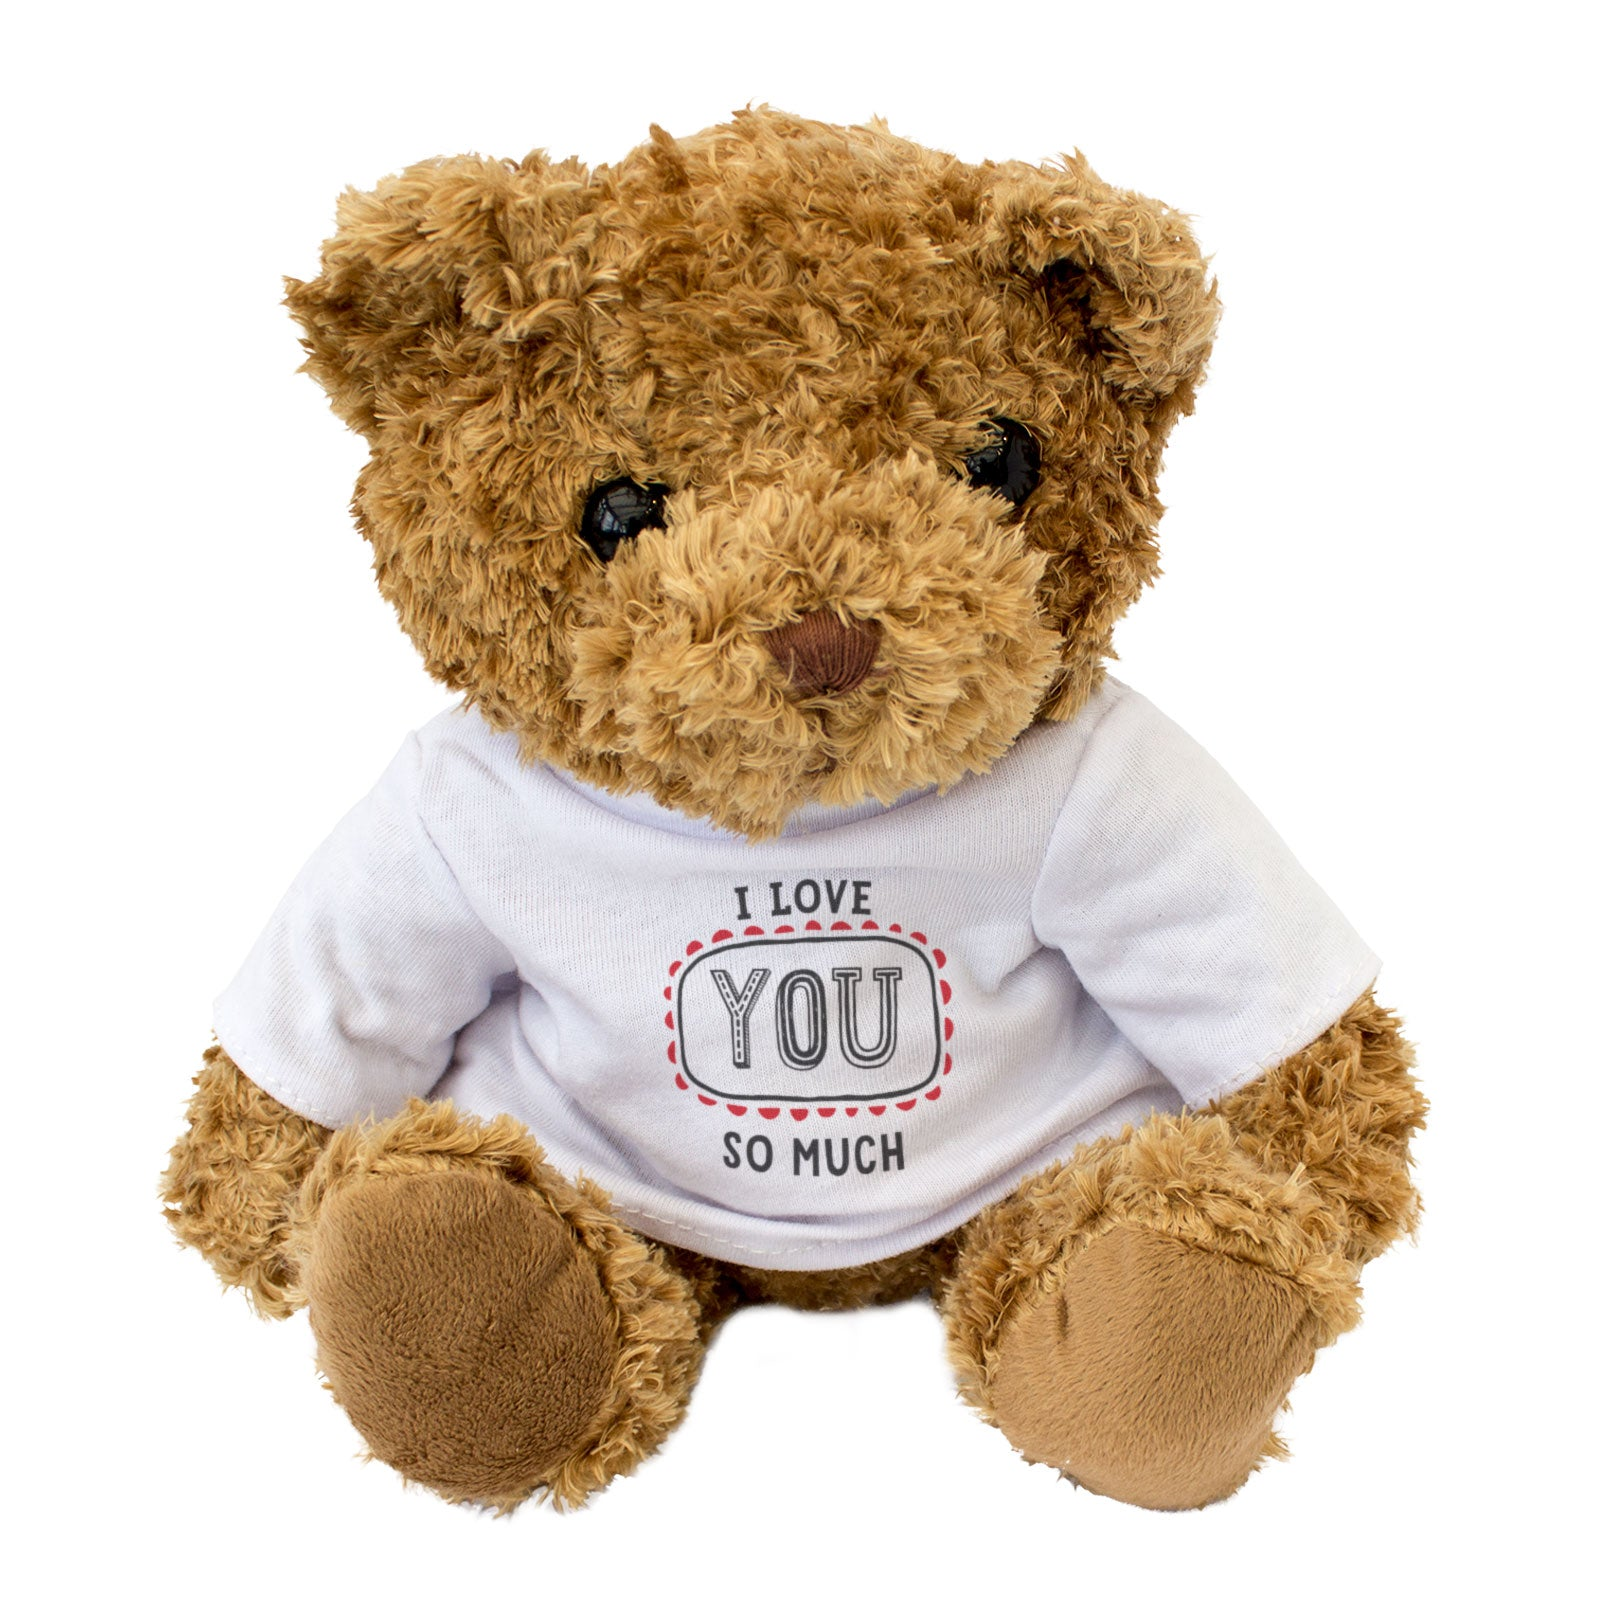 I Love You So Much Teddy Bear - Hand Lettered Design